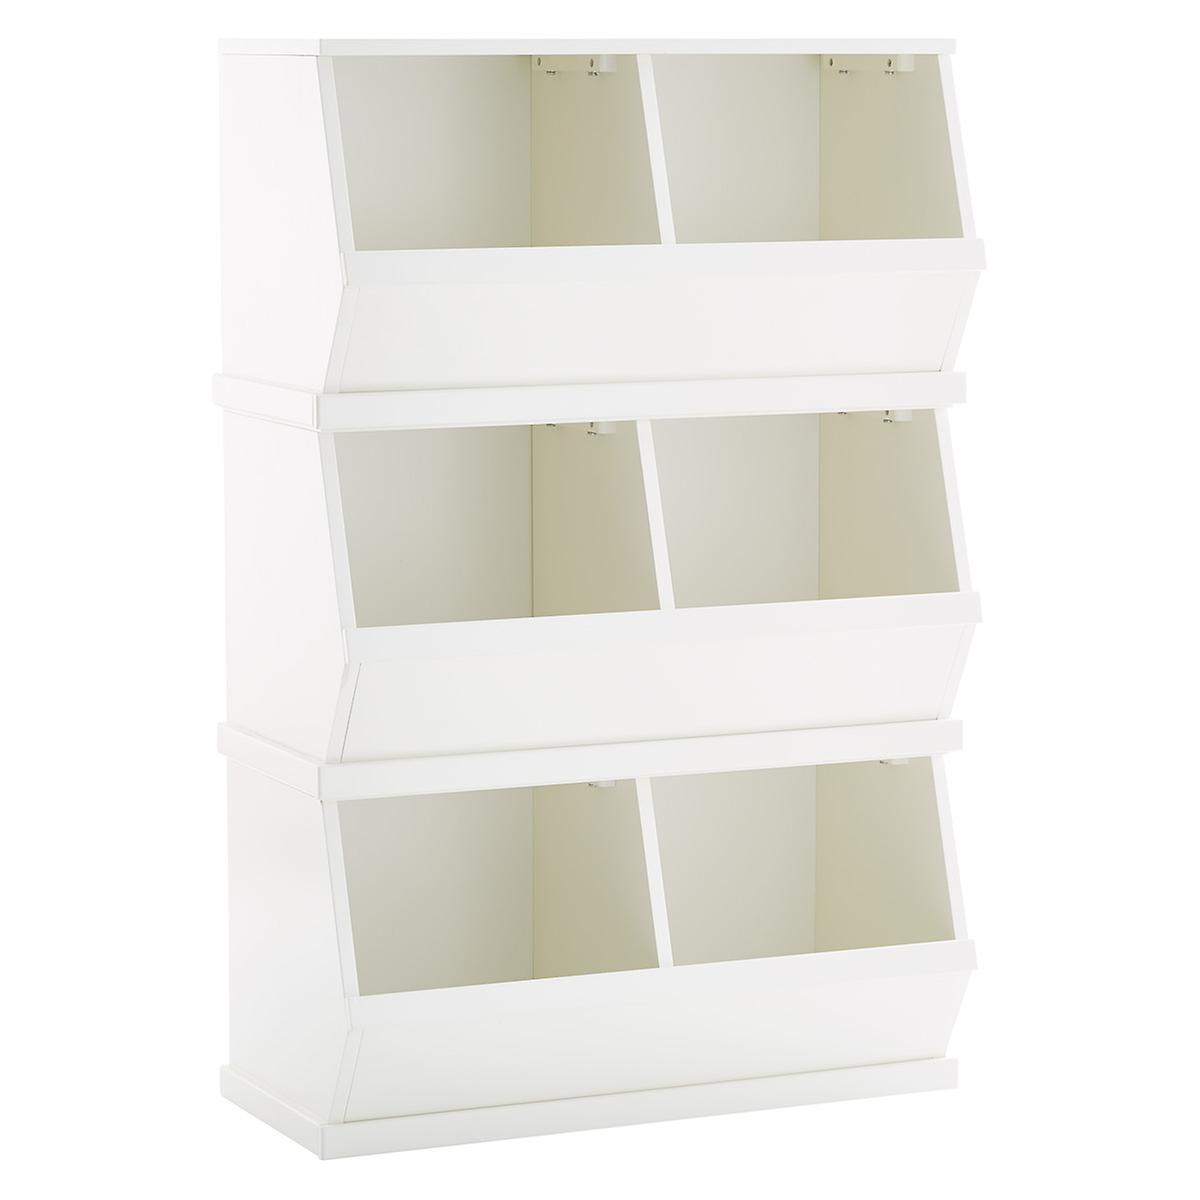 321956779980 further Watch additionally 222249347876 likewise Plastic Closet Organizer Shelves additionally Industrial Storage Cabi s With Bins. on toy storage organizer with drawers